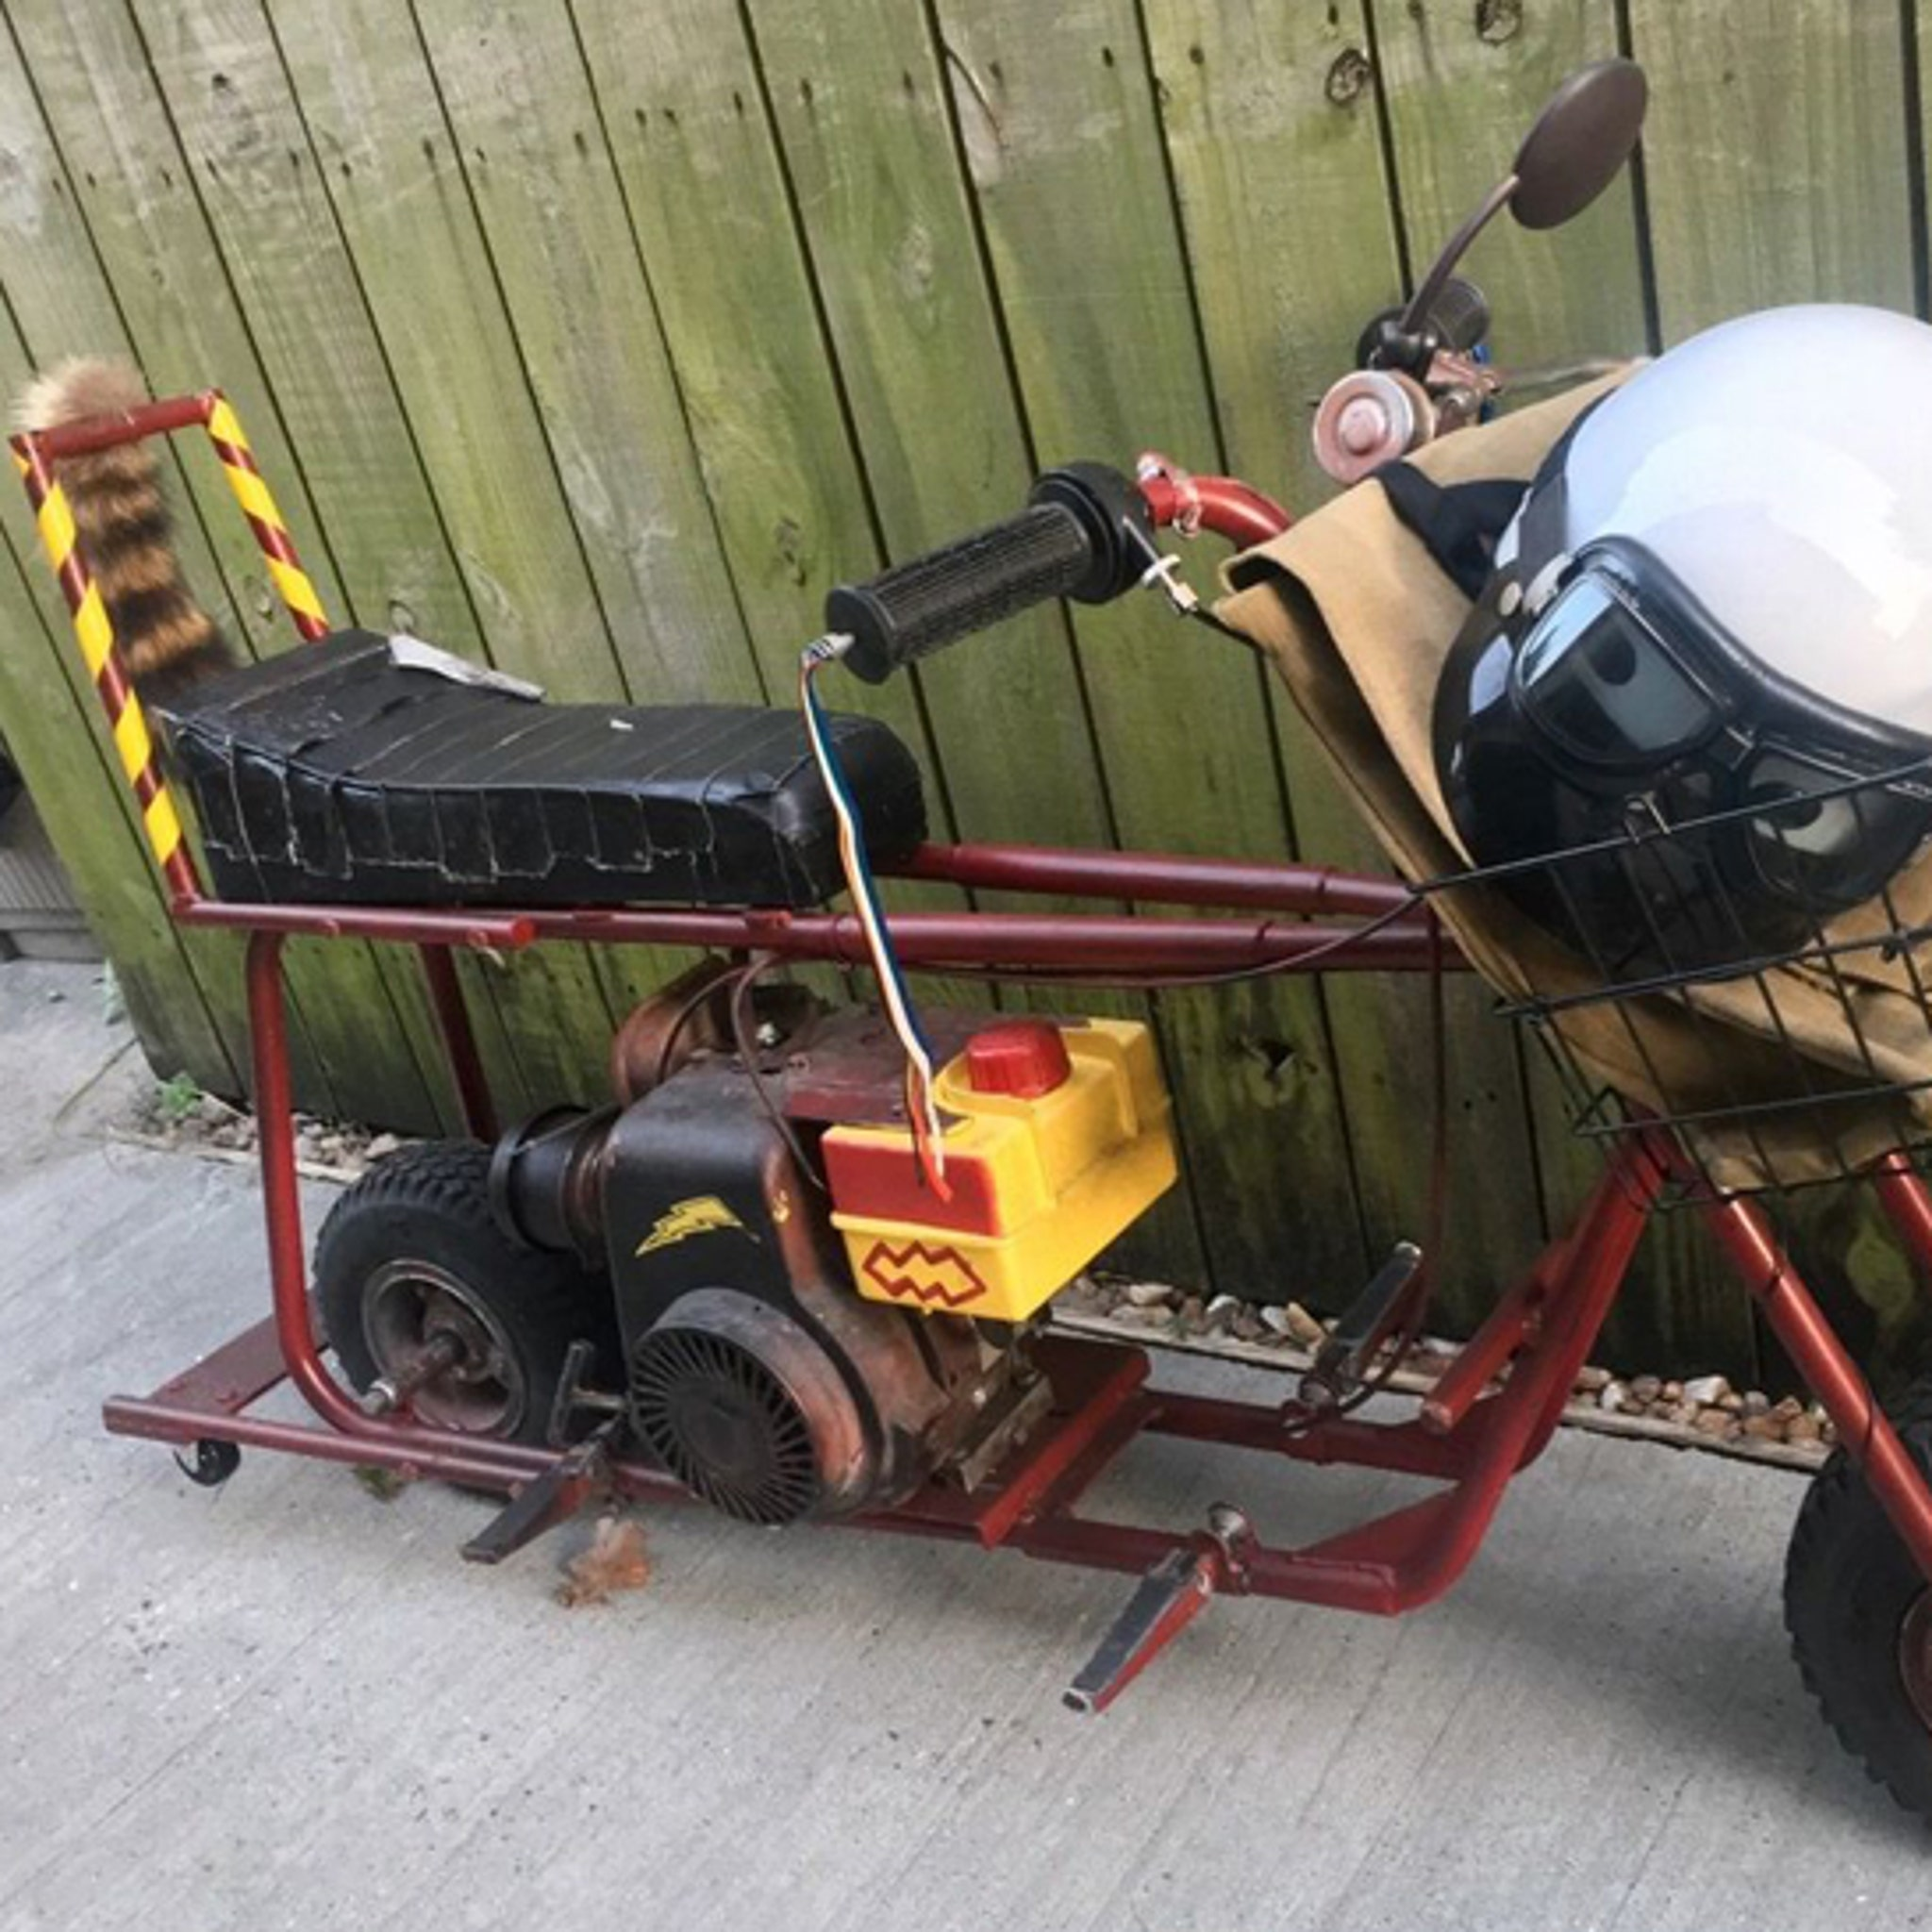 Dumb and Dumber' Mini Bike for Sale on eBay